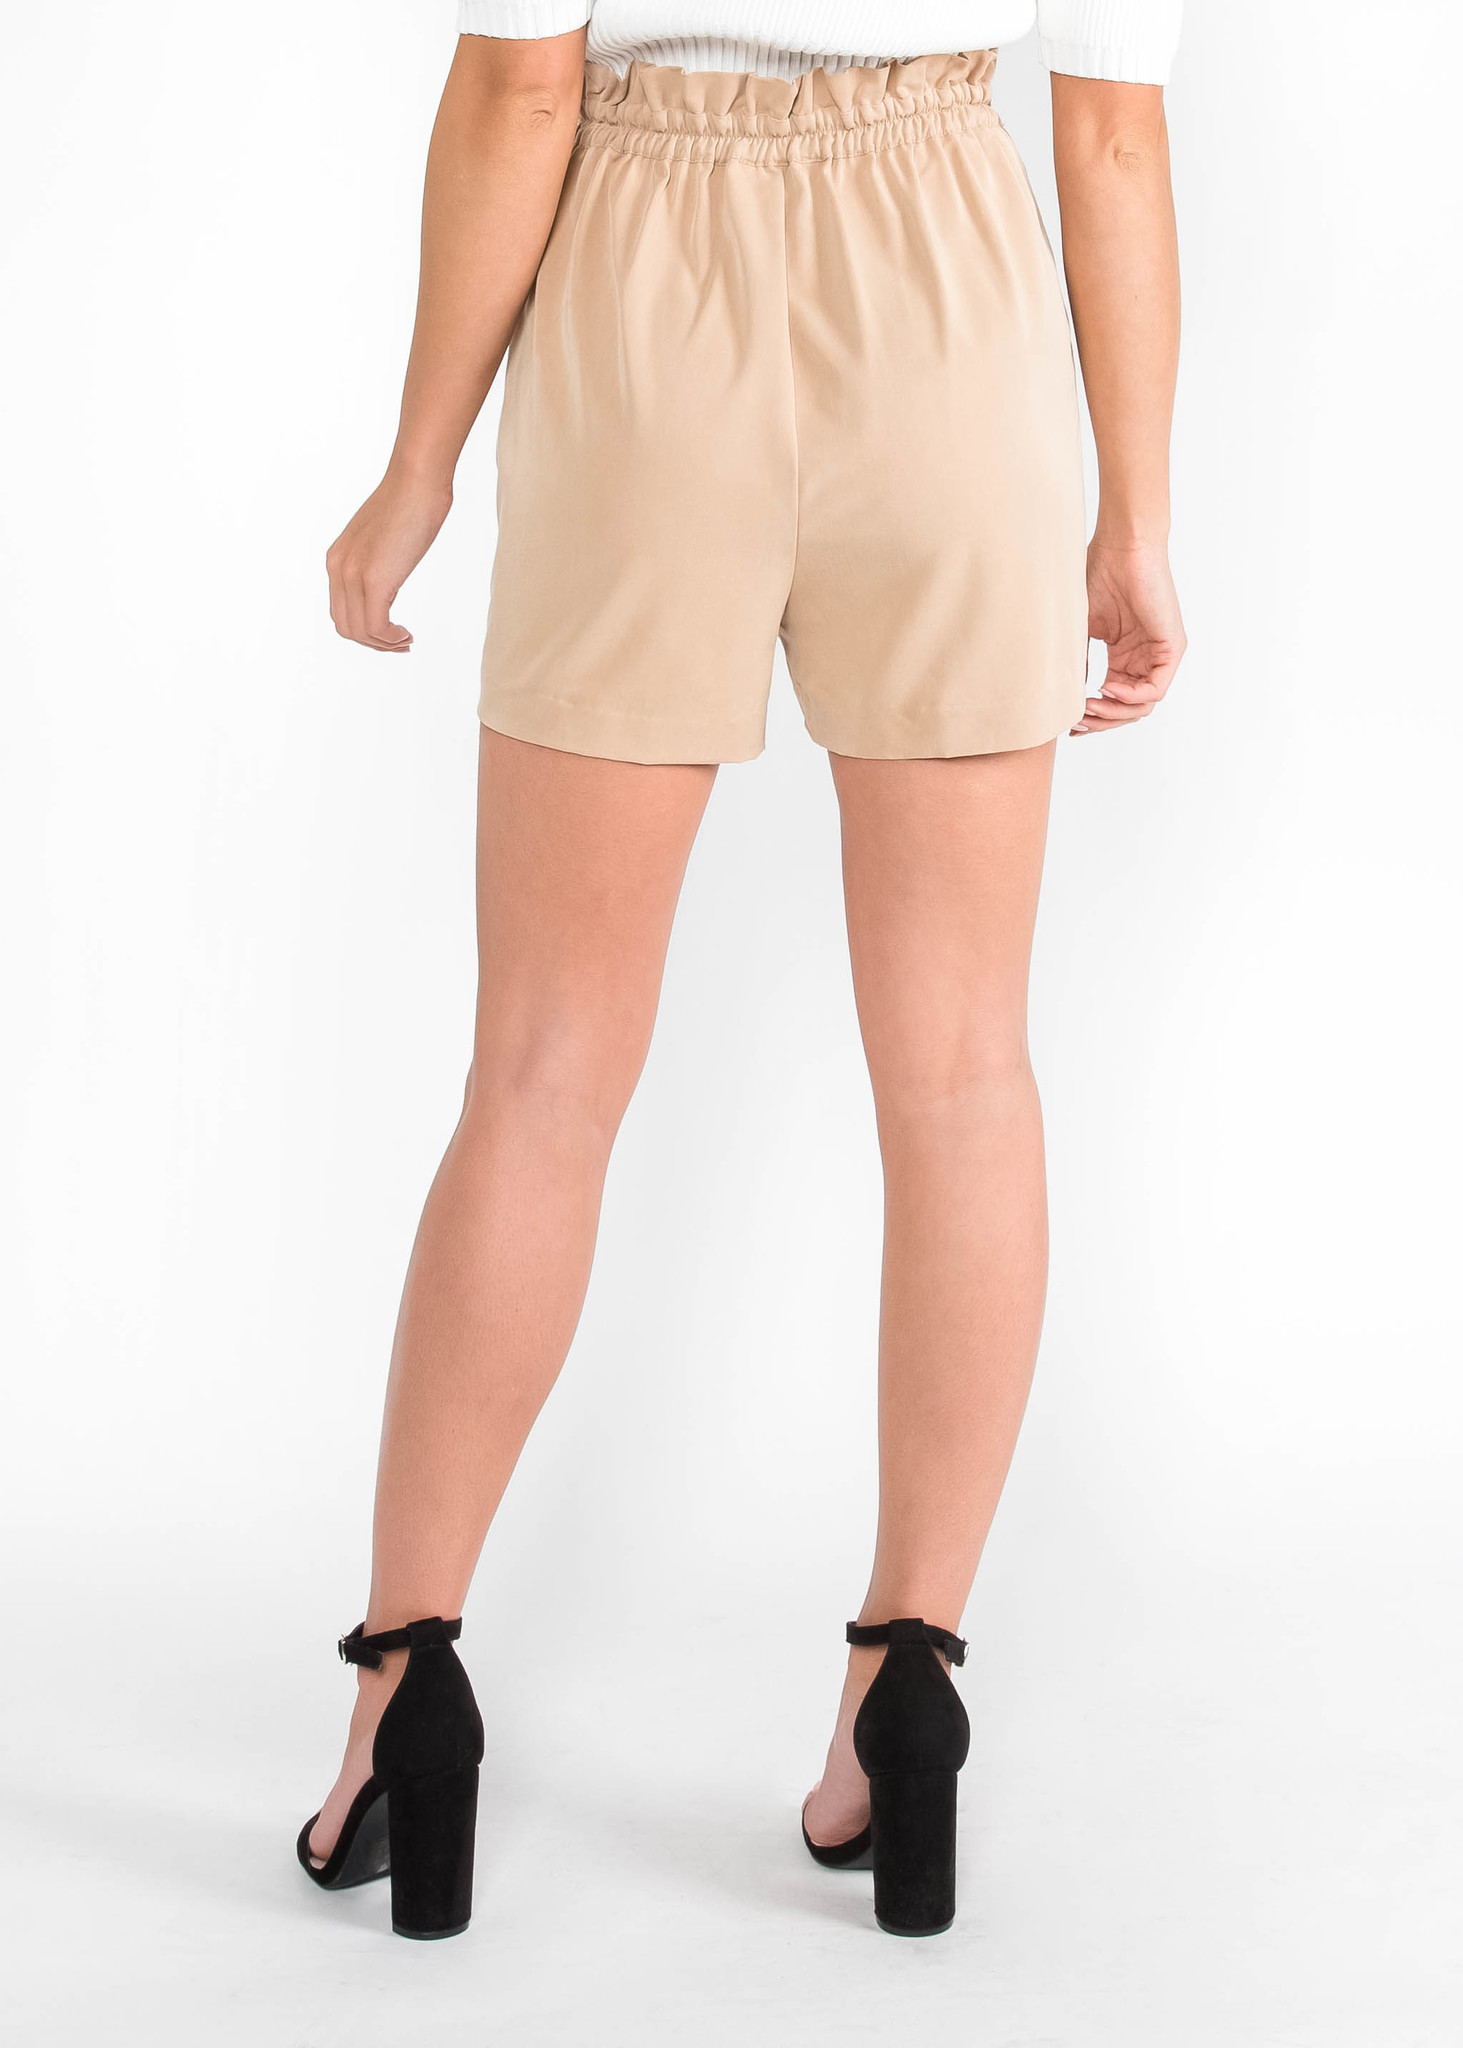 COMMON GROUND BELTED SHORTS